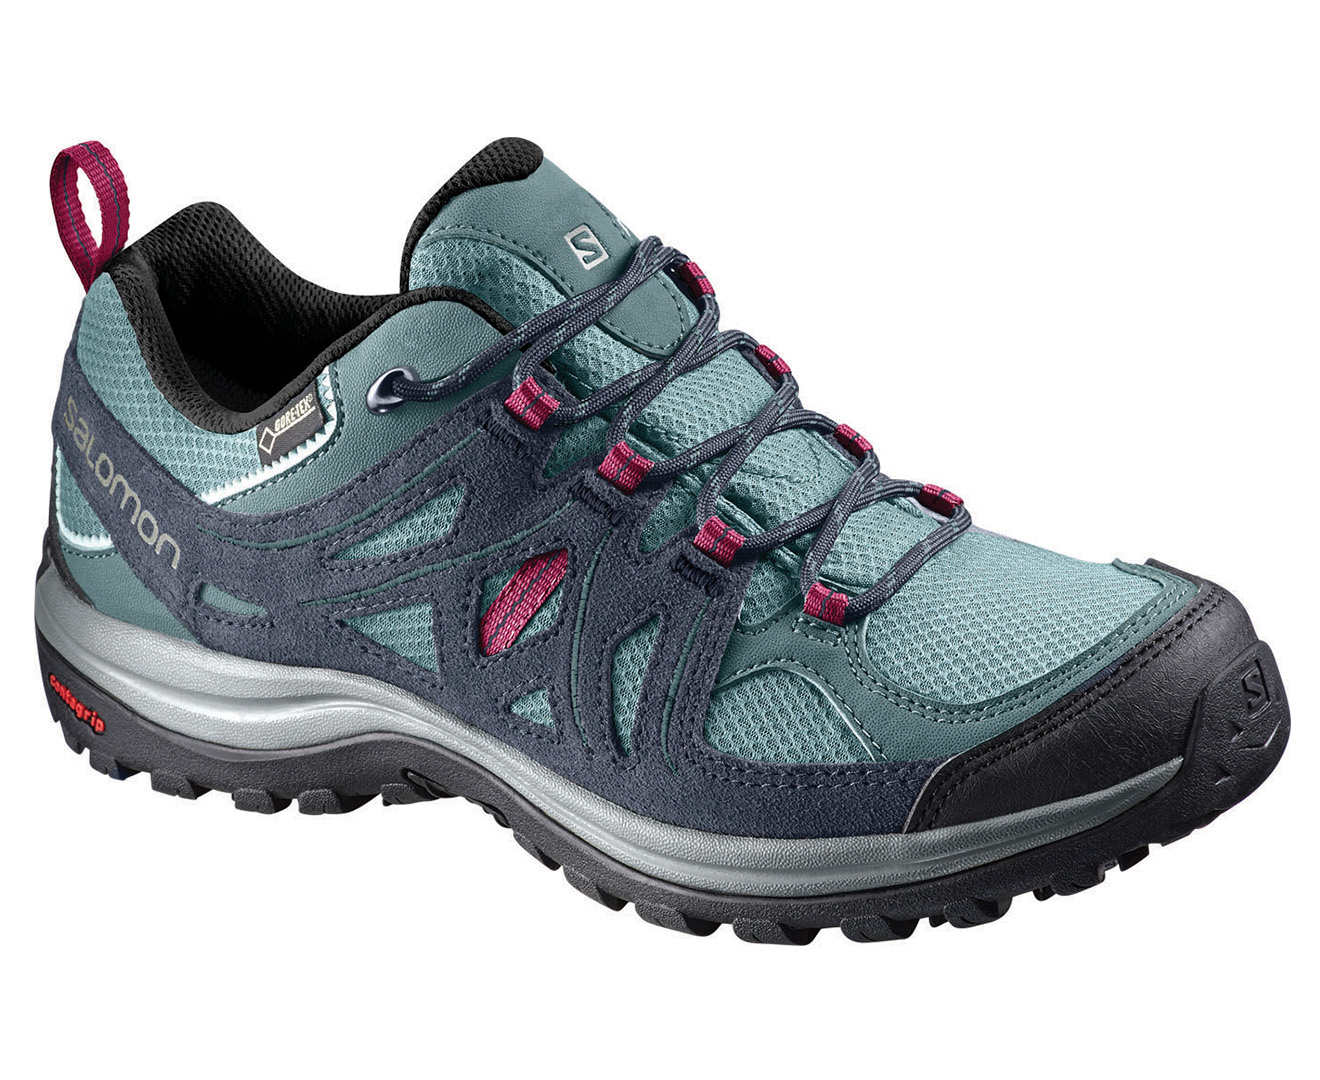 Womens Ellipse Gtx Hiking Shoe